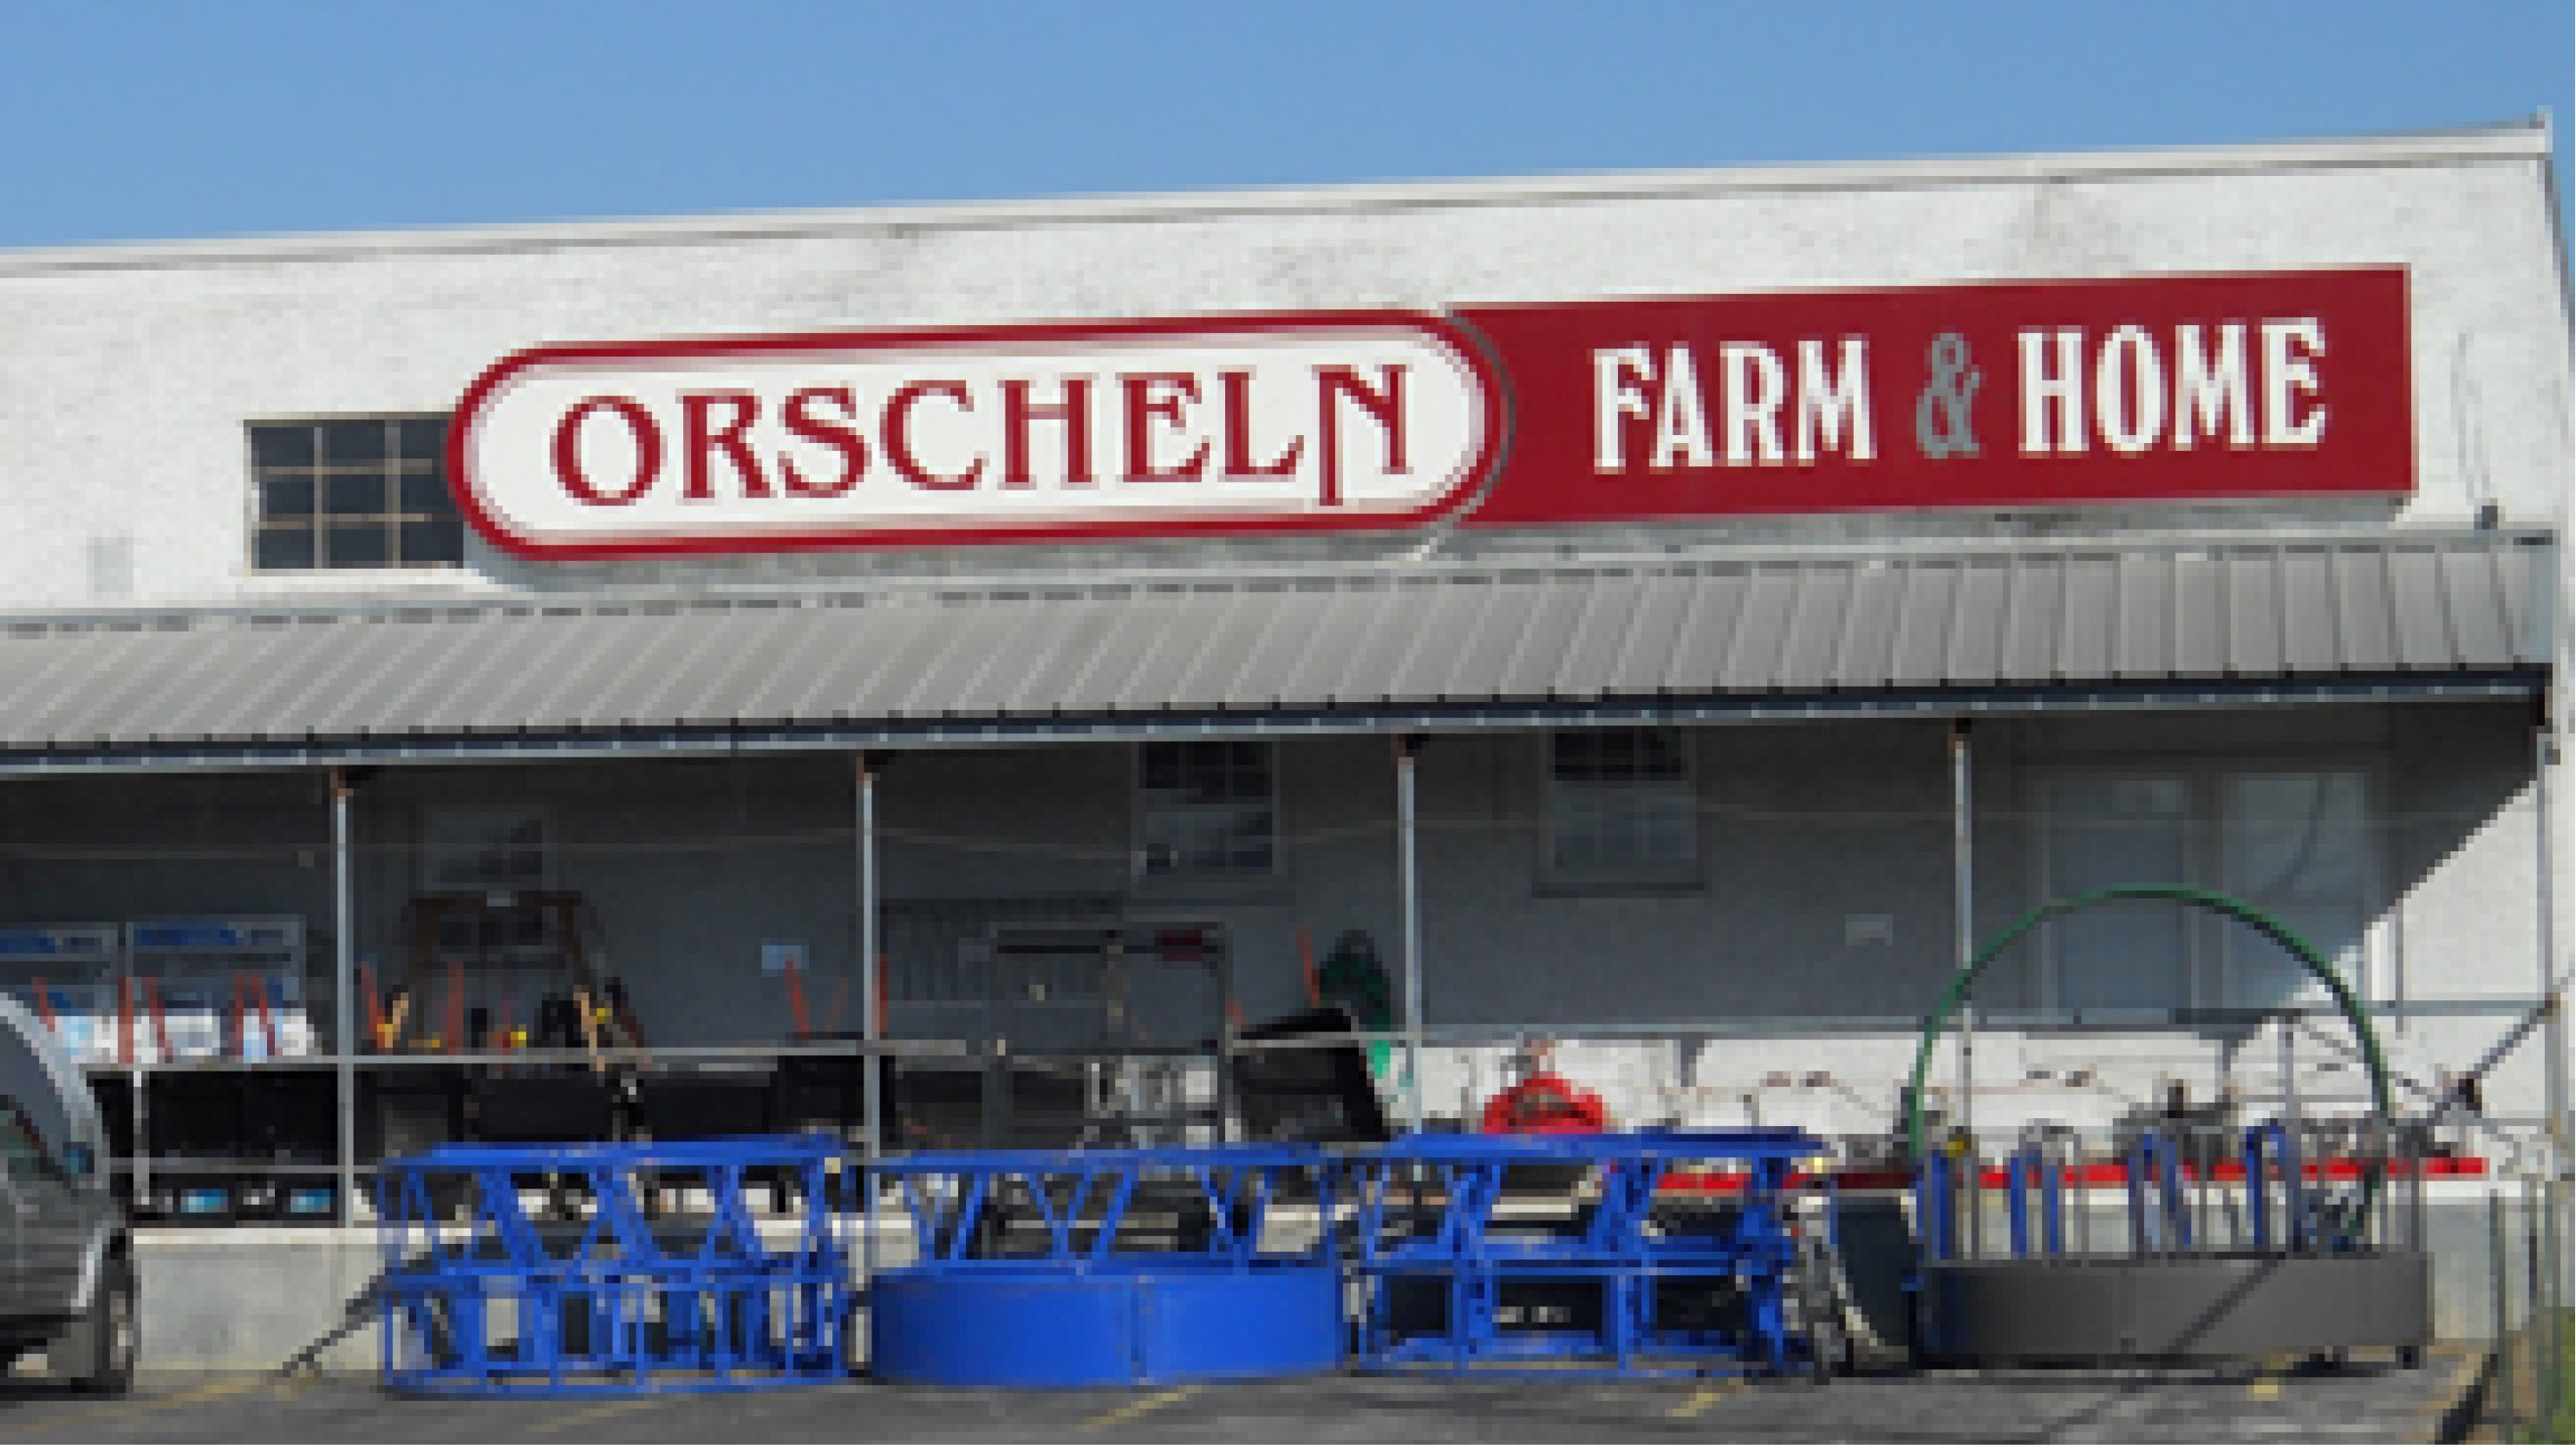 Front view of Orscheln Farm & Home Store in Springdale, Arkansas 72762